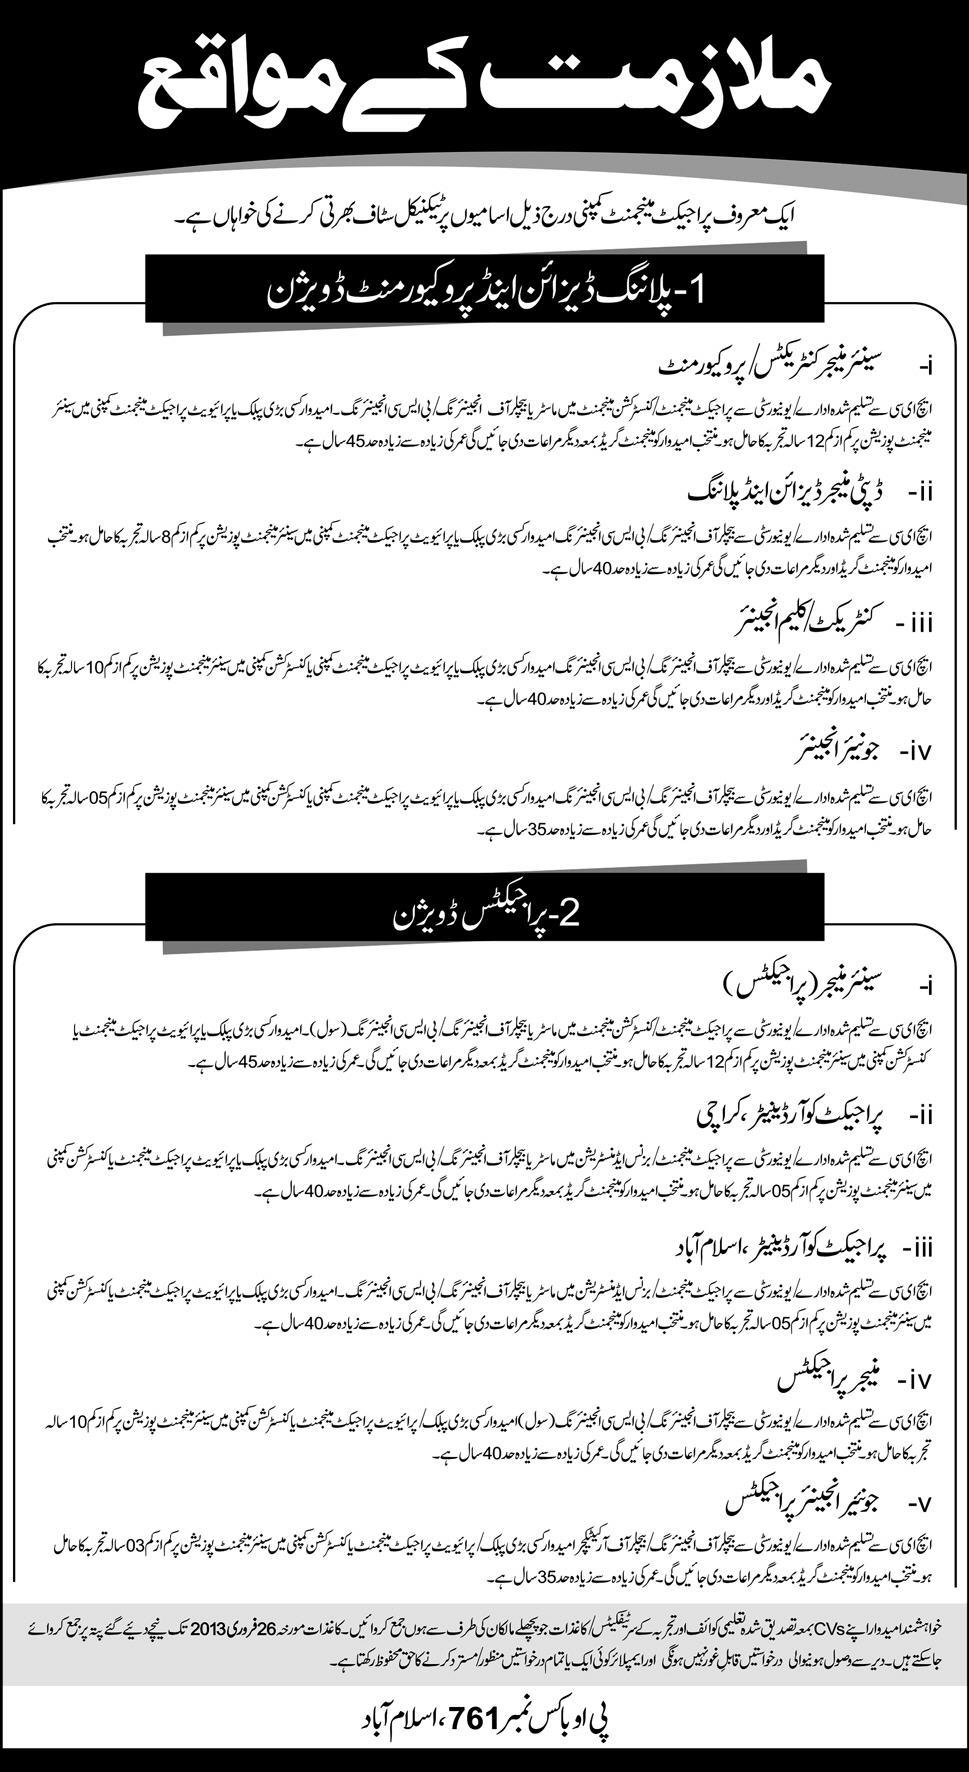 Technical Staff Jobs in Islamabad Pakistan Feb 2013